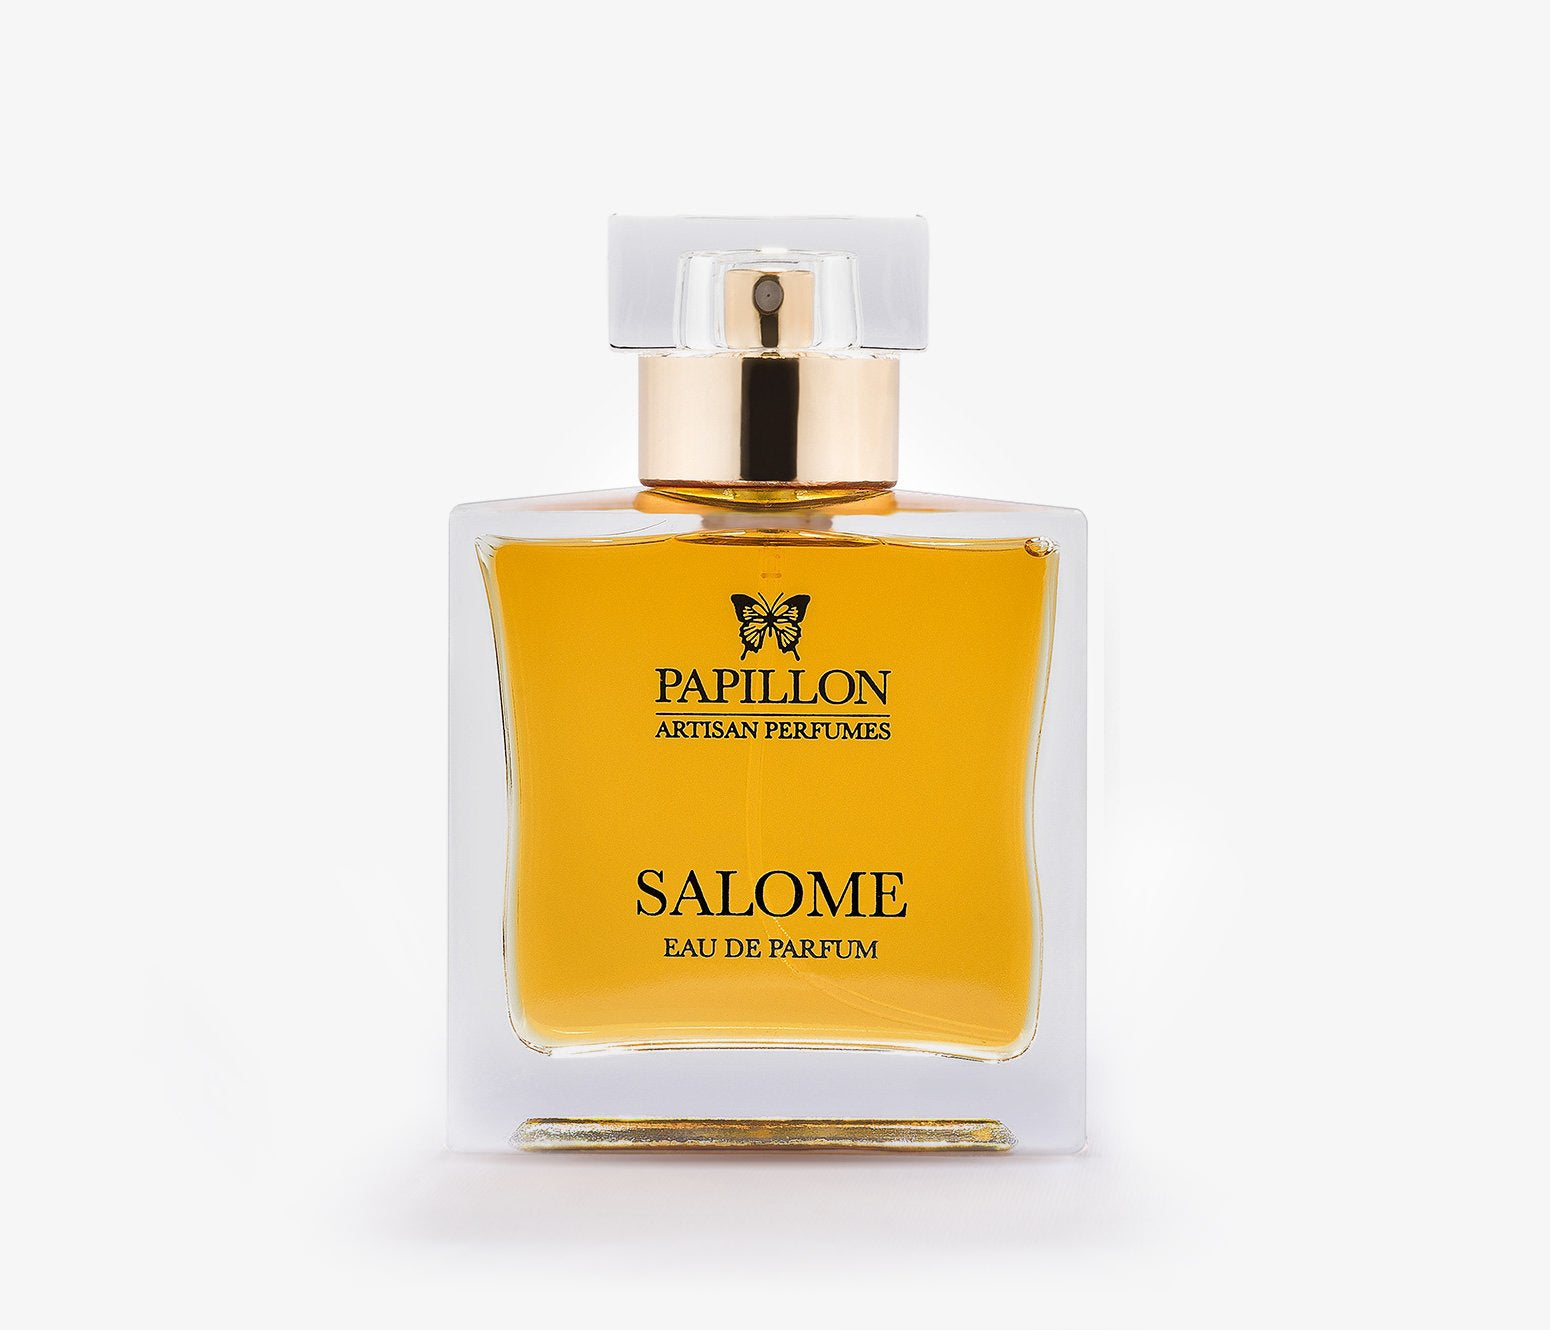 Papillon - Salome - 50ml - YGL001 - Product Image - Fragrance - Les Senteurs